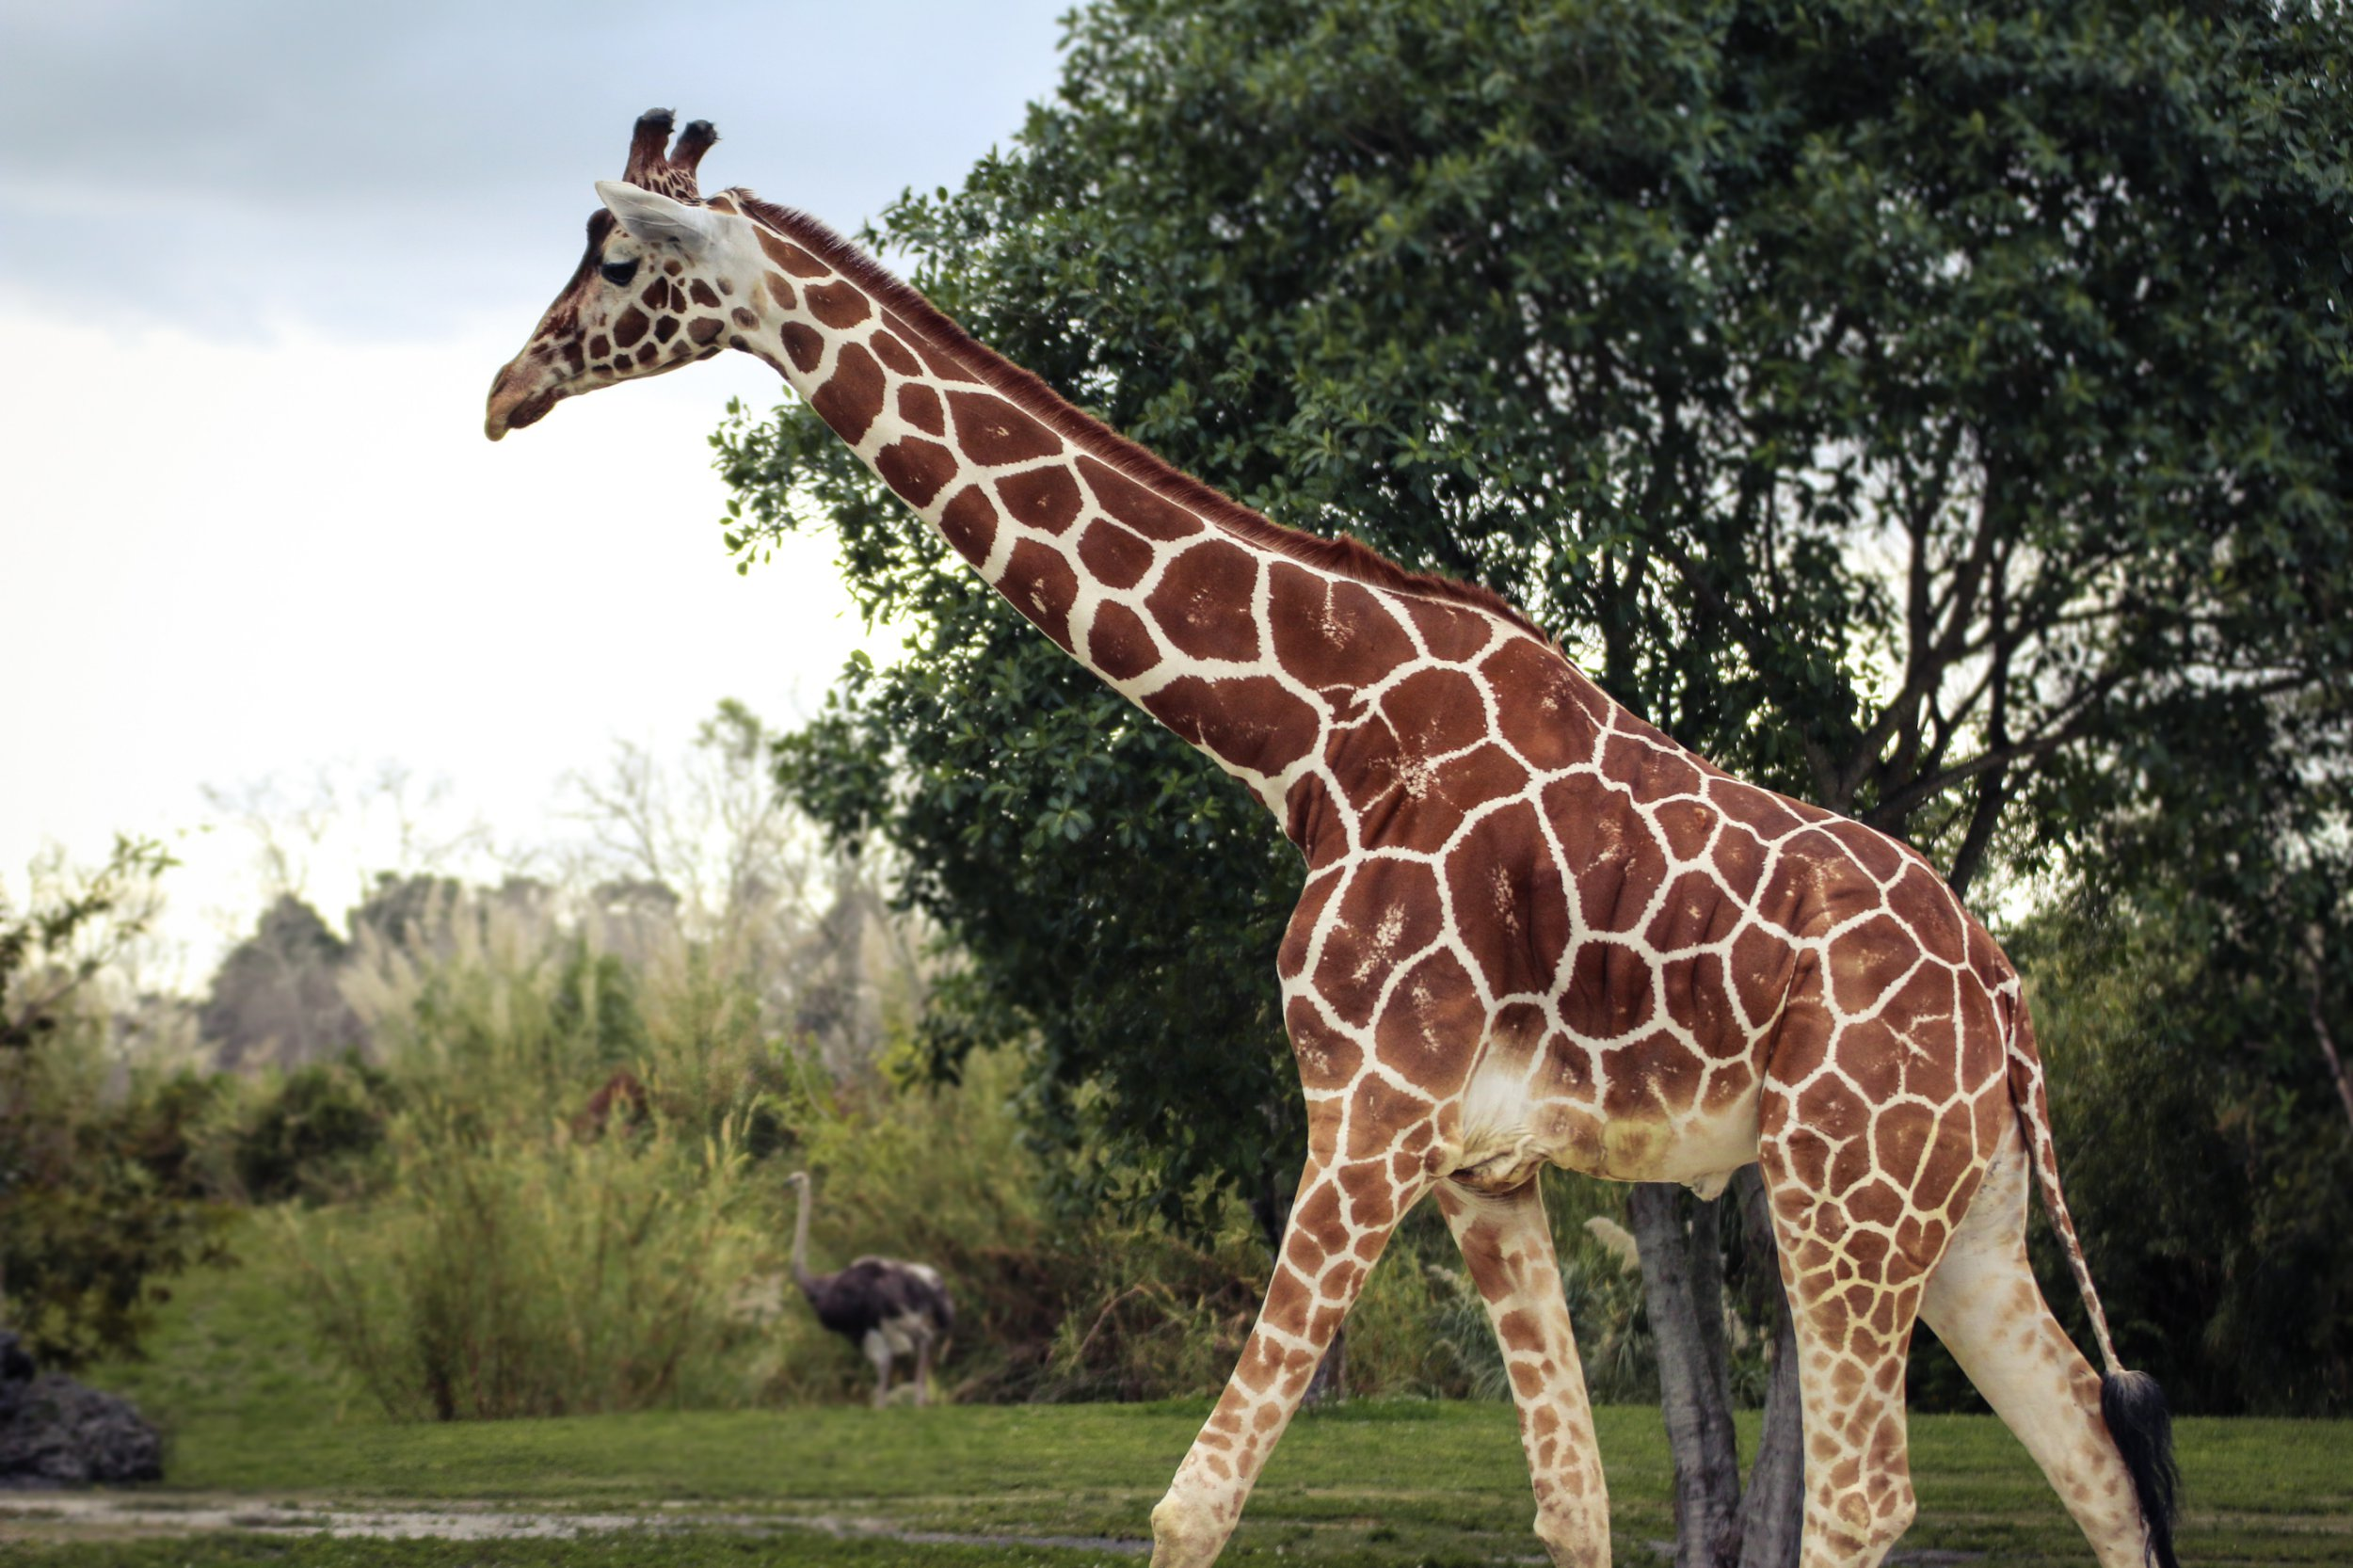 Giraffe dies at zoo after visitor tried to give it some food